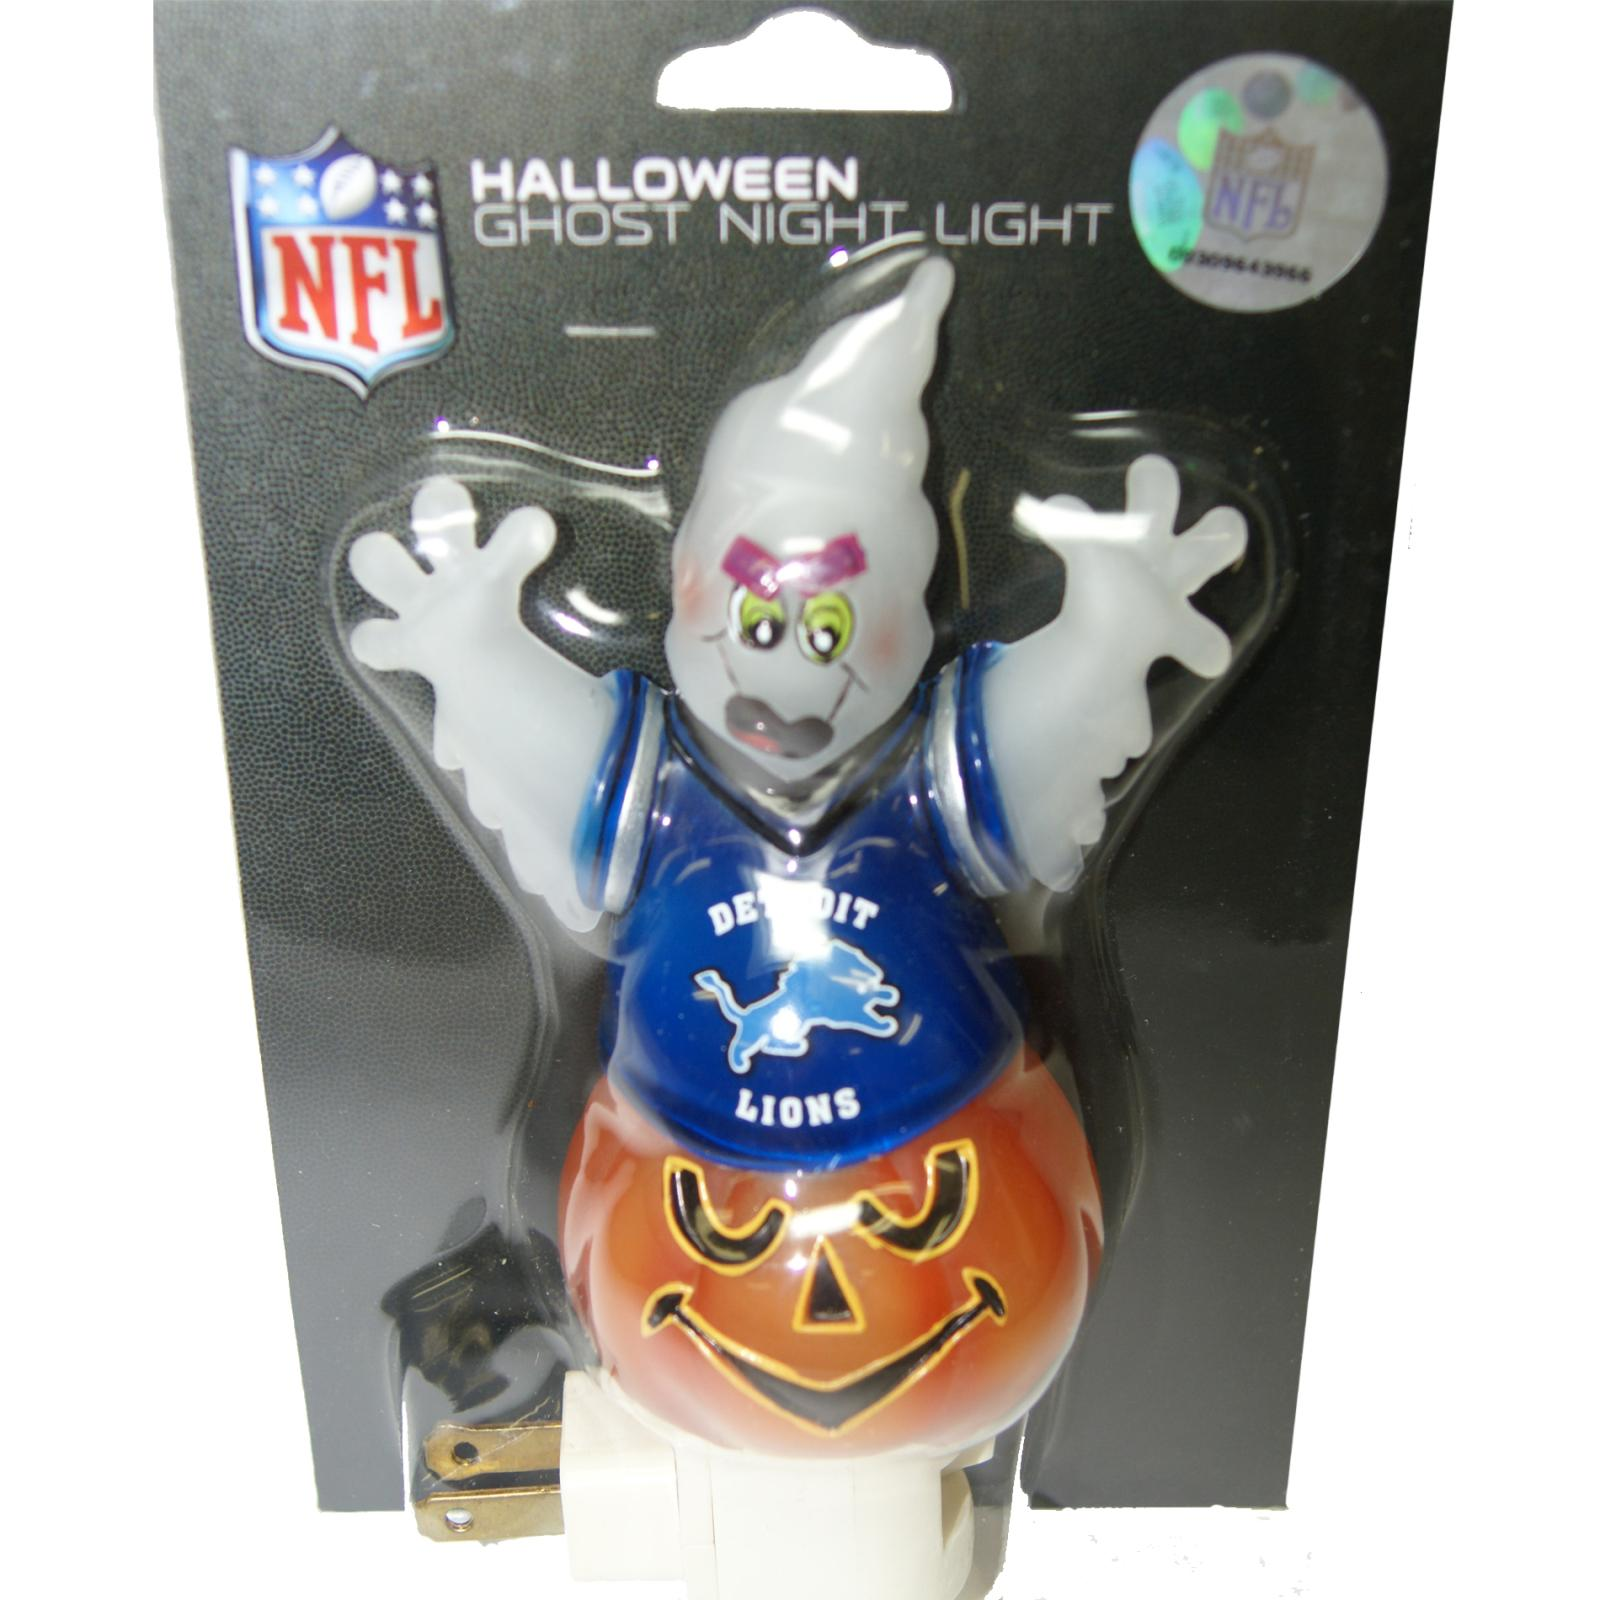 New England Patriots Halloween Ghost Night Light